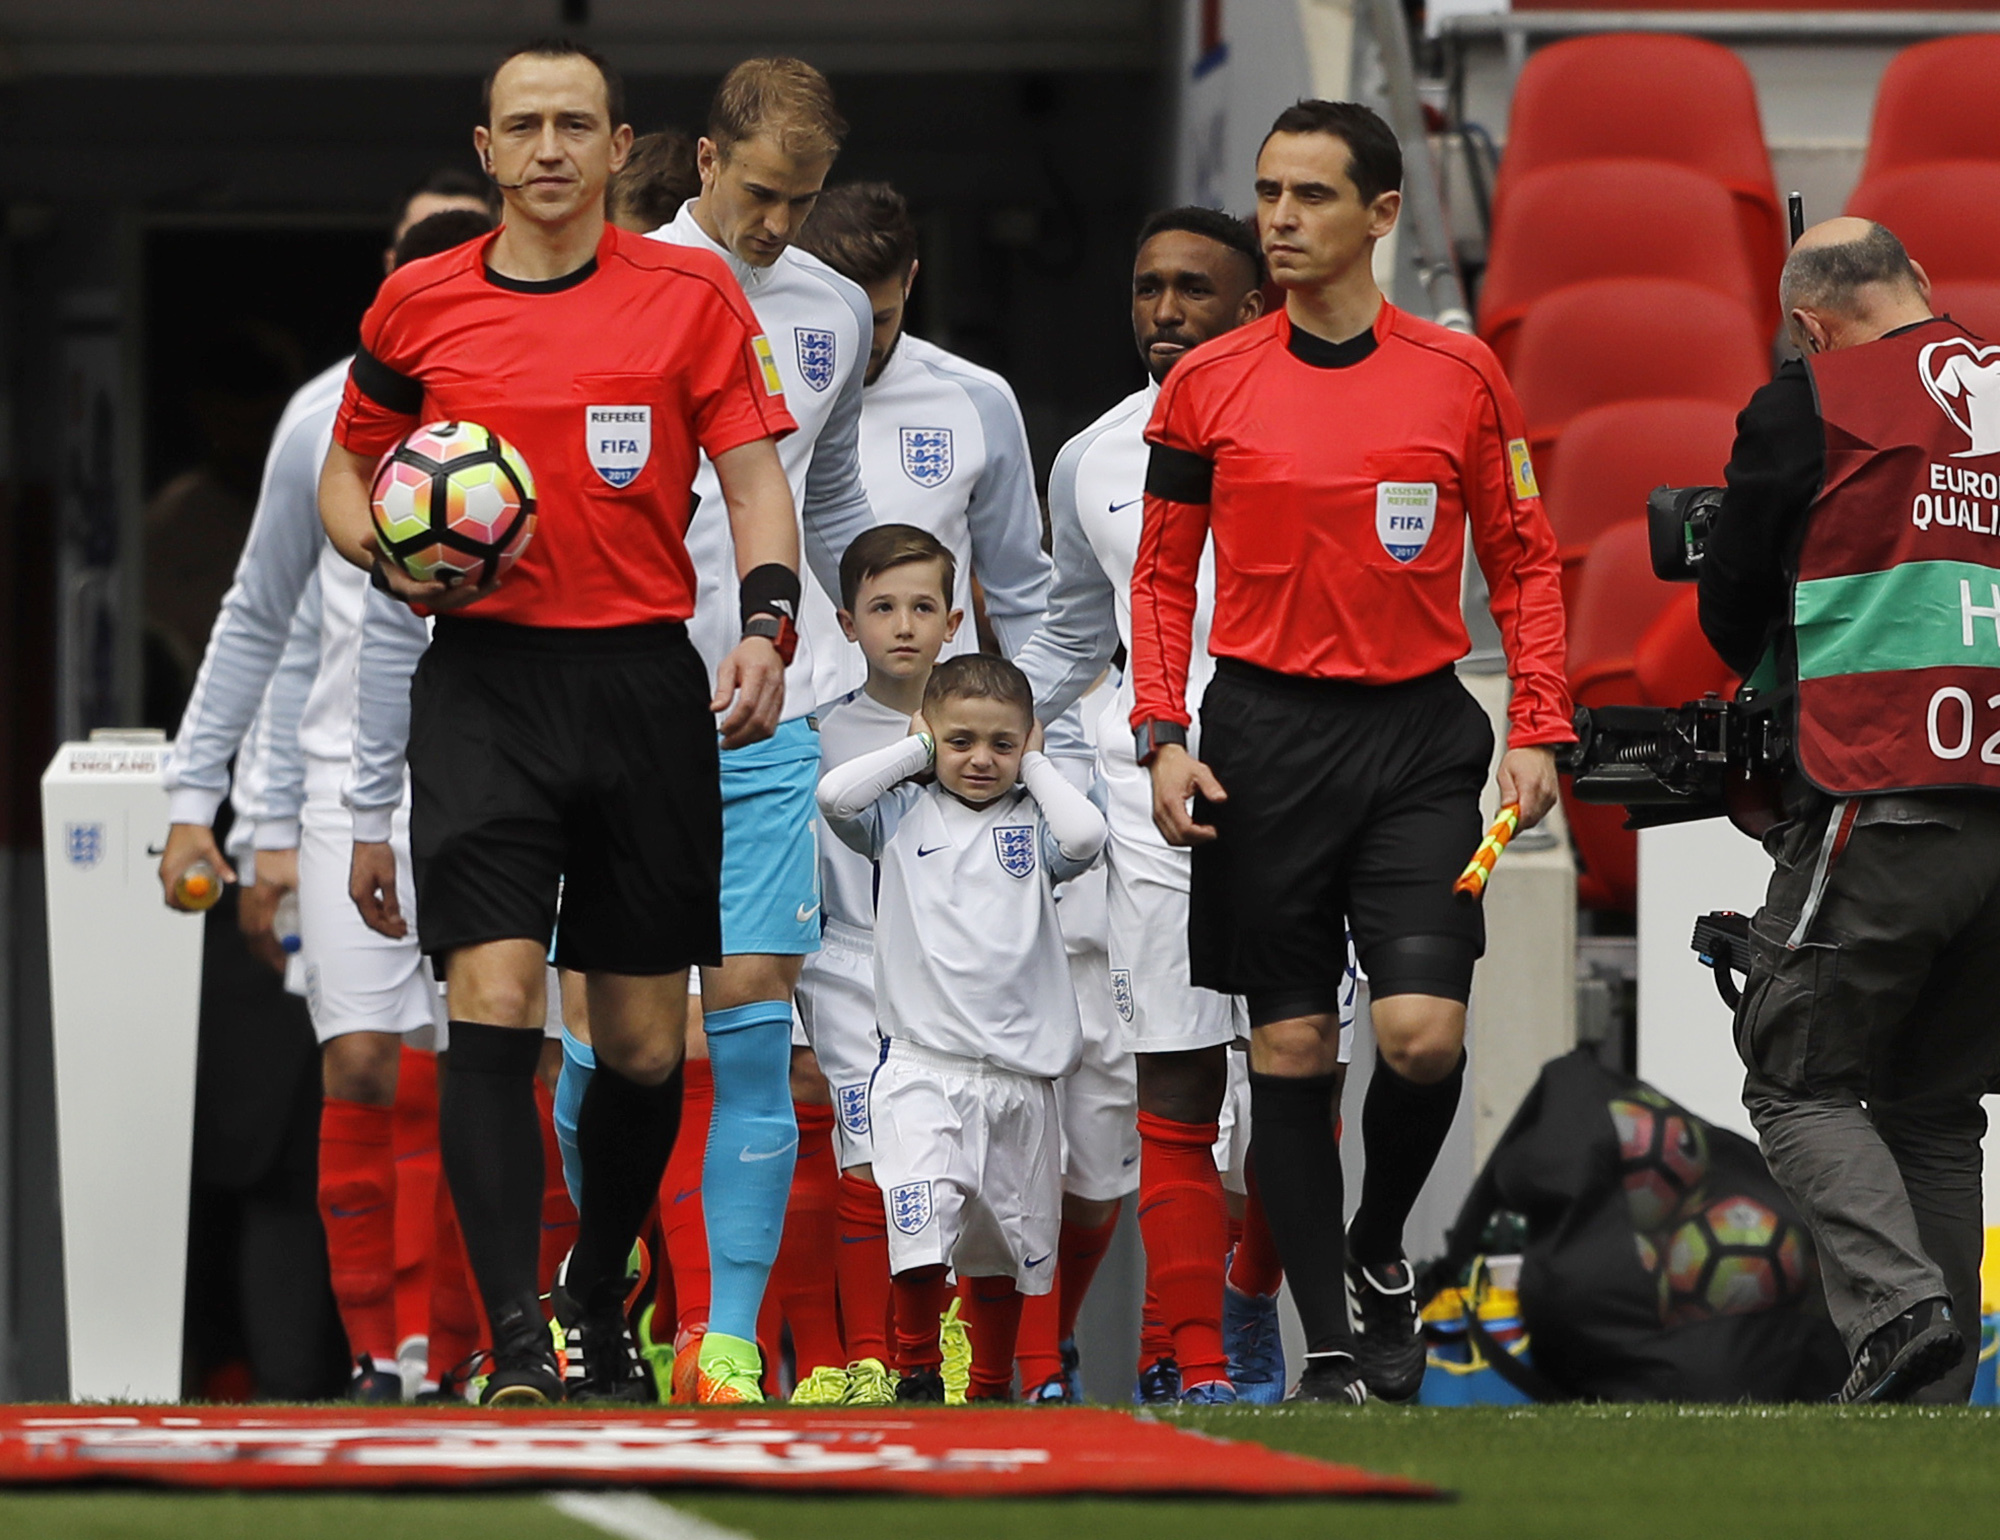 Bradley Lowery, battling a rare form of cancer, covers his ears while he is leading England out. Photo / AP